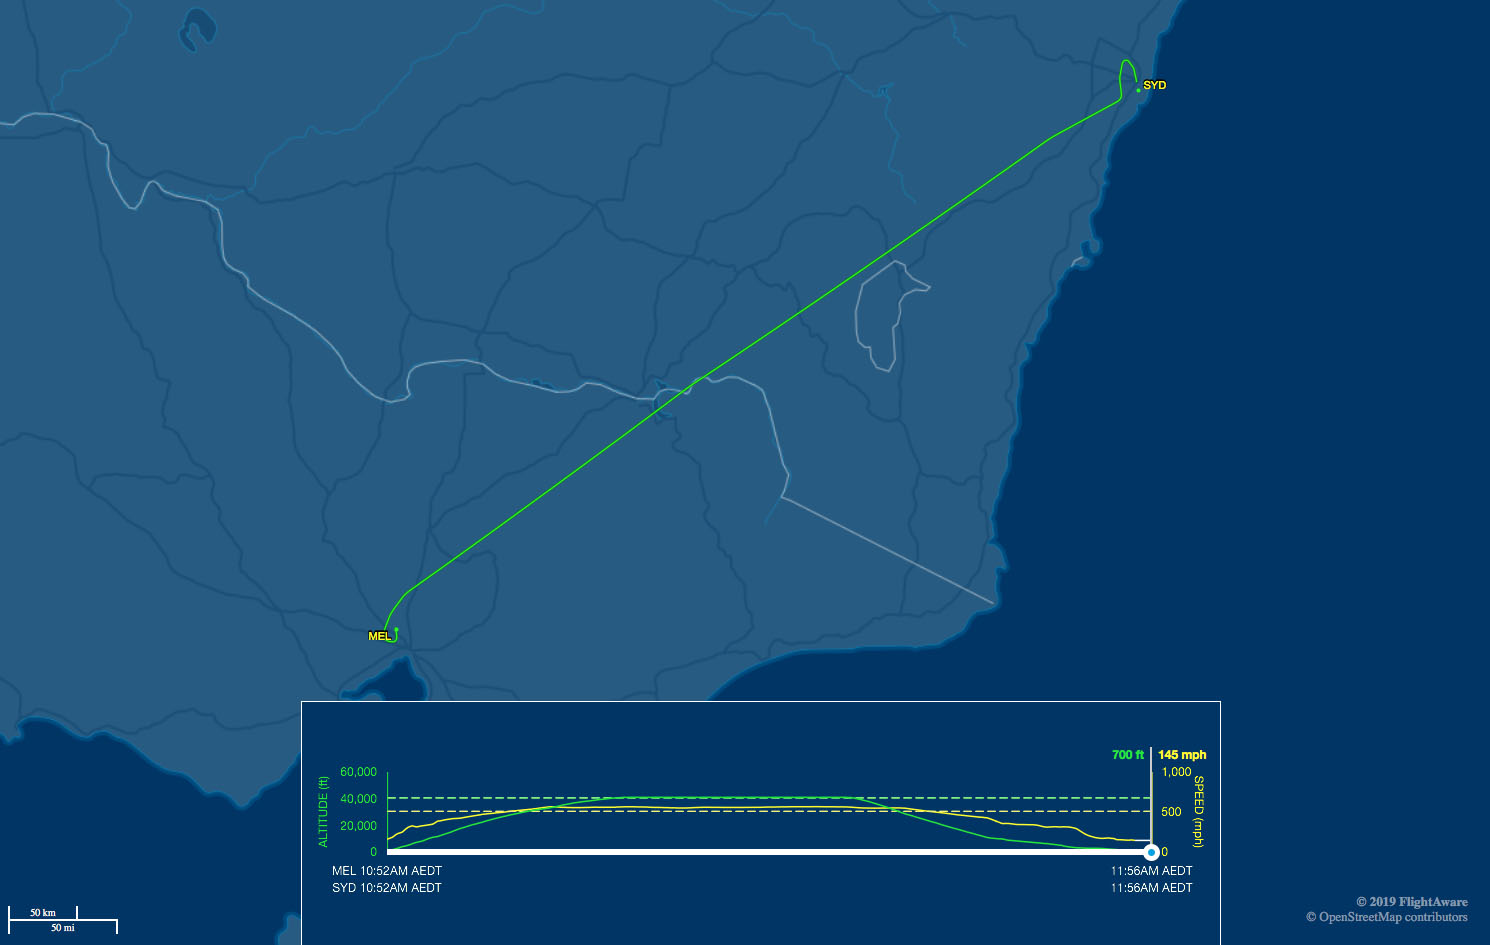 Melbourne to Sydney route map